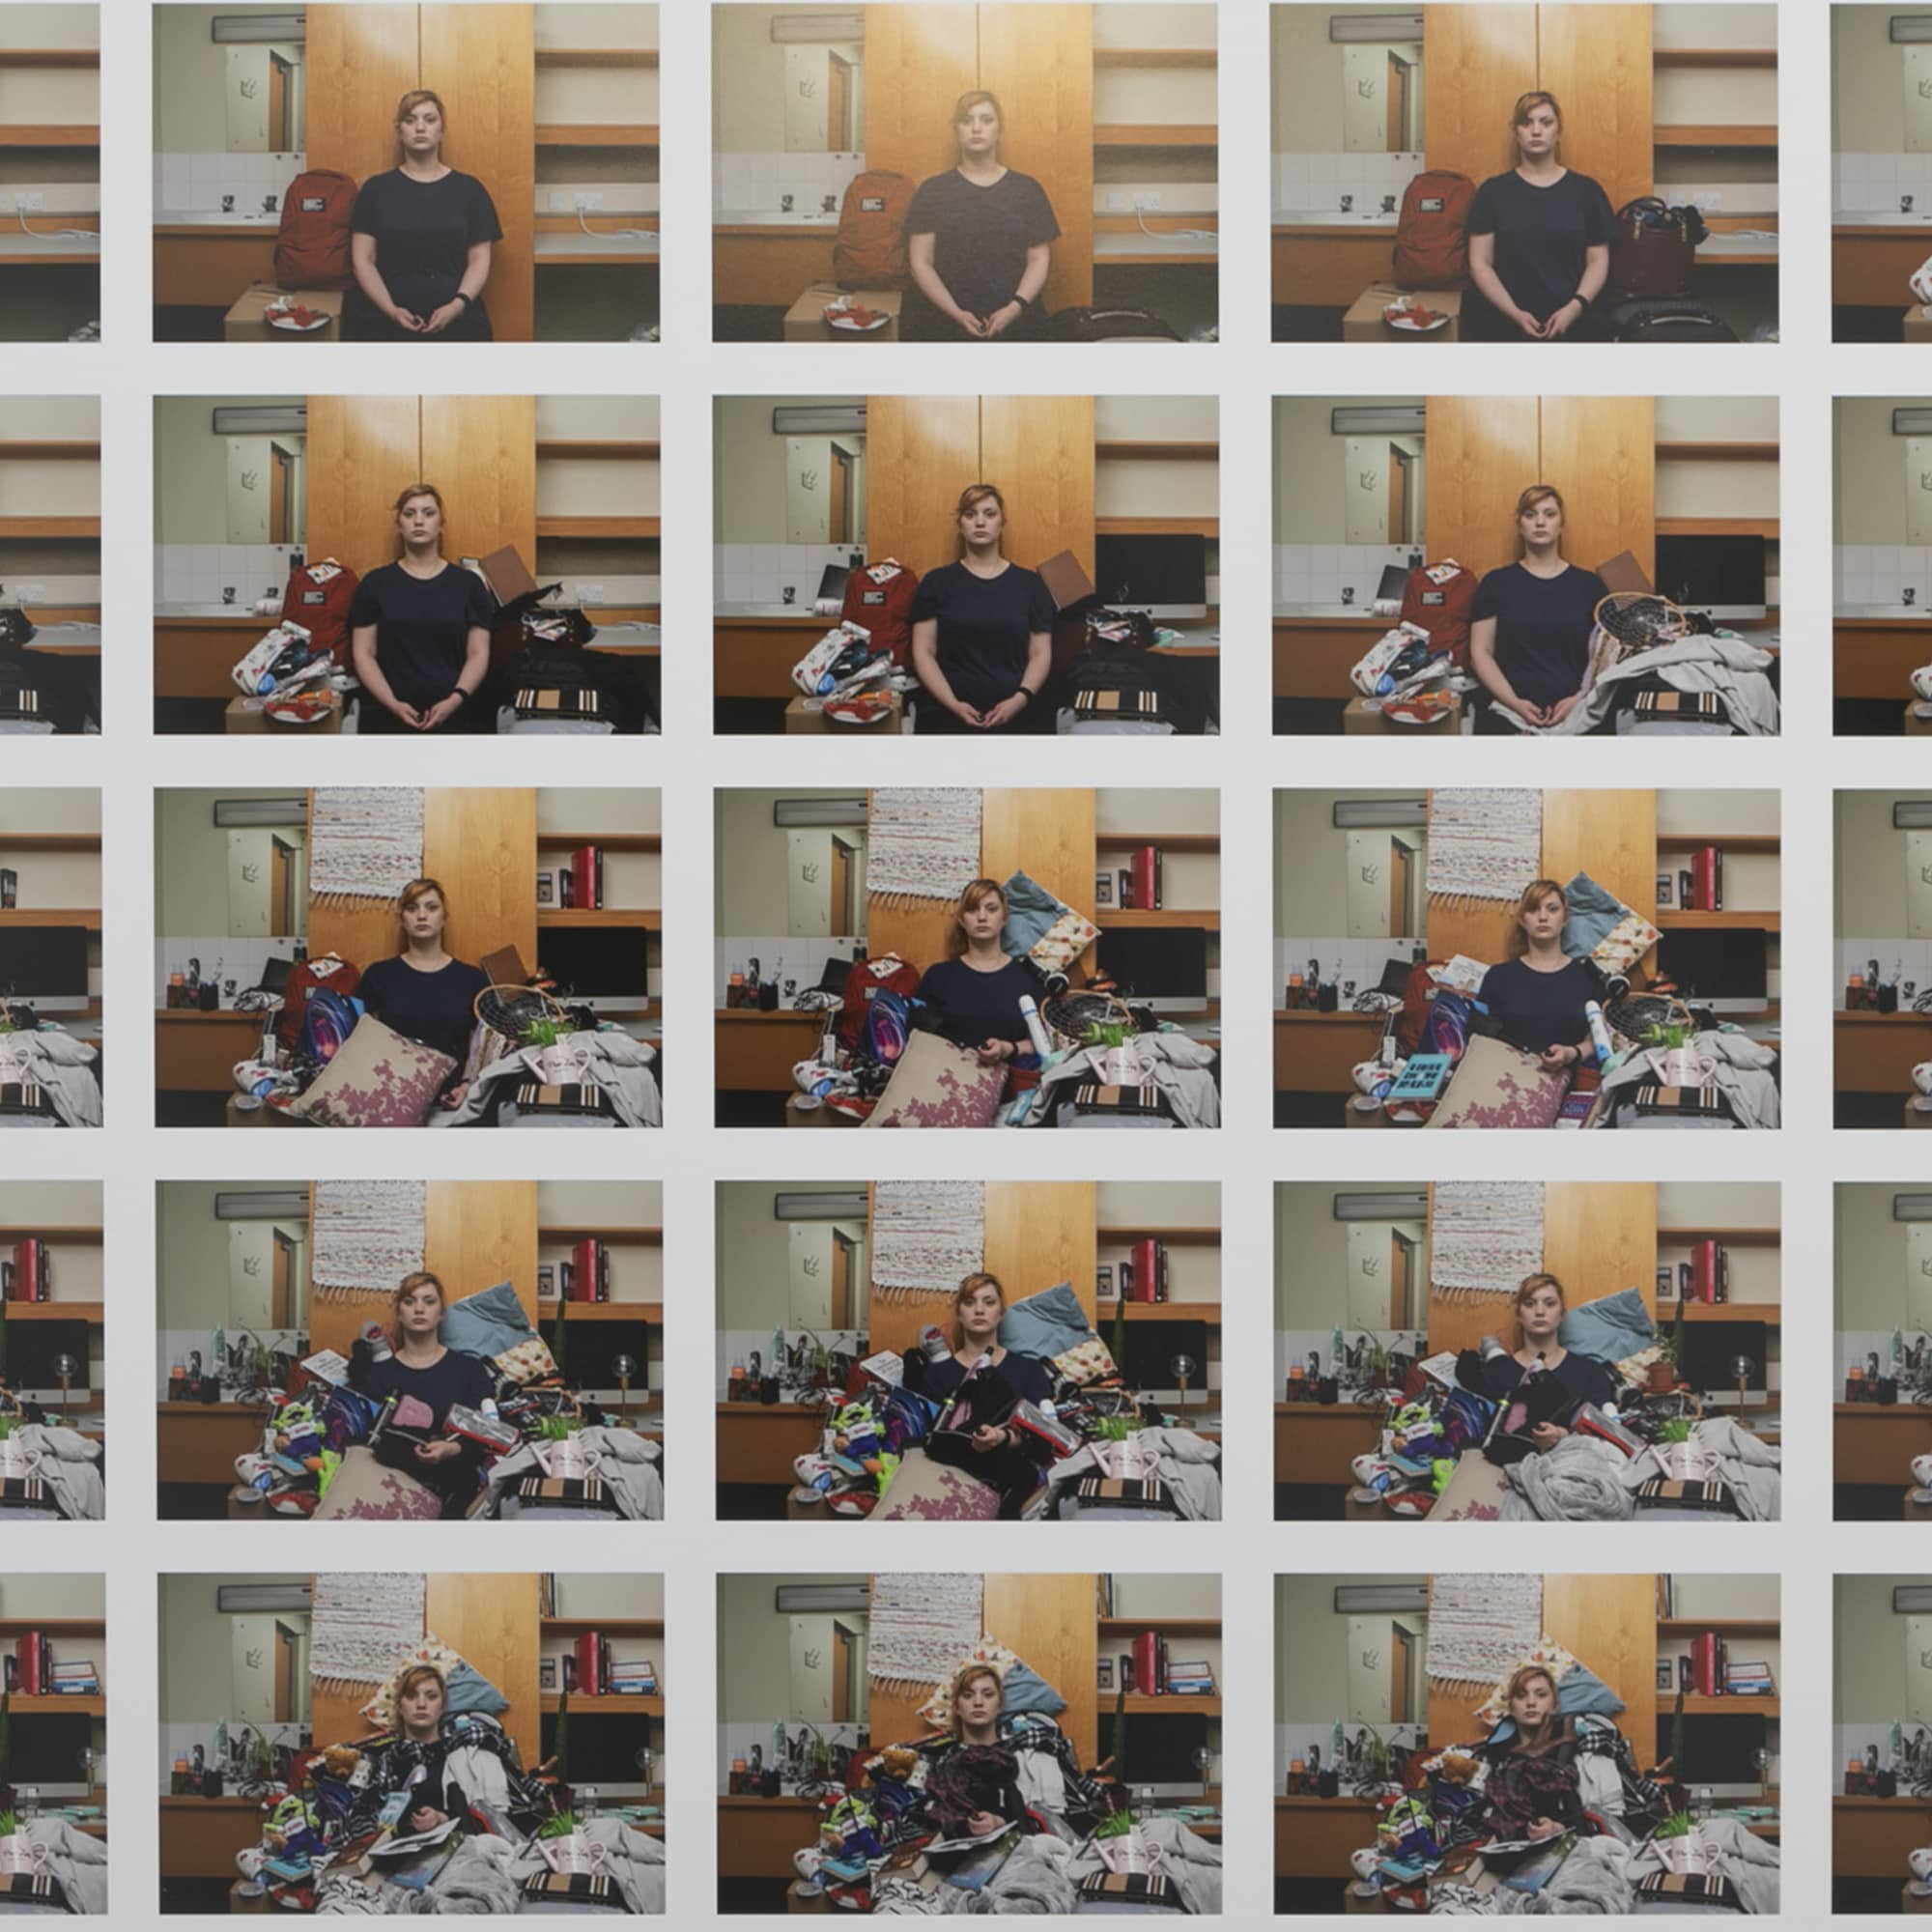 Multiple images of a woman gradually being covered up by her own personal possessions